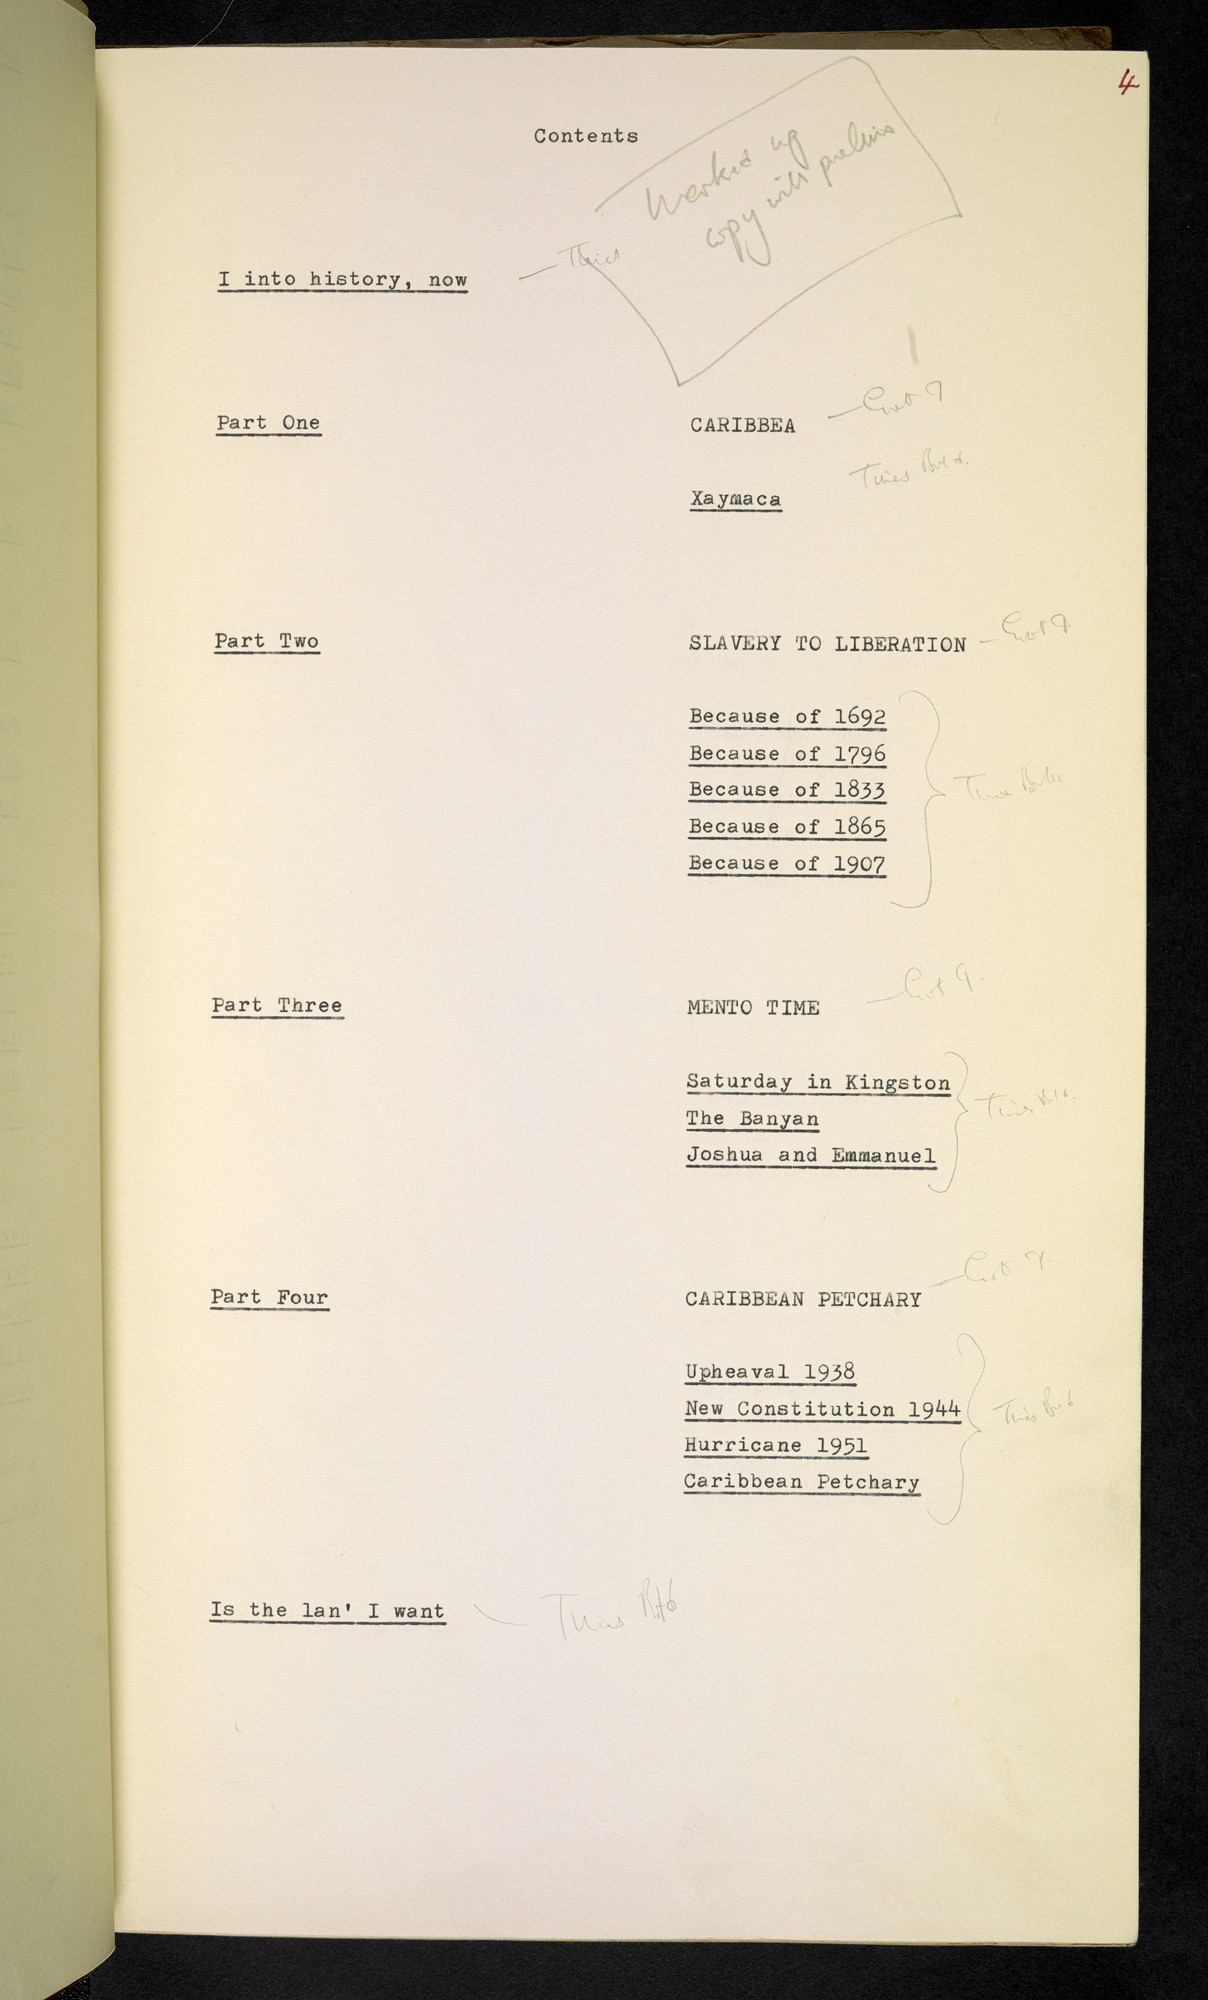 Caribbean Artists Movement (1966 - 1972) - The British Library